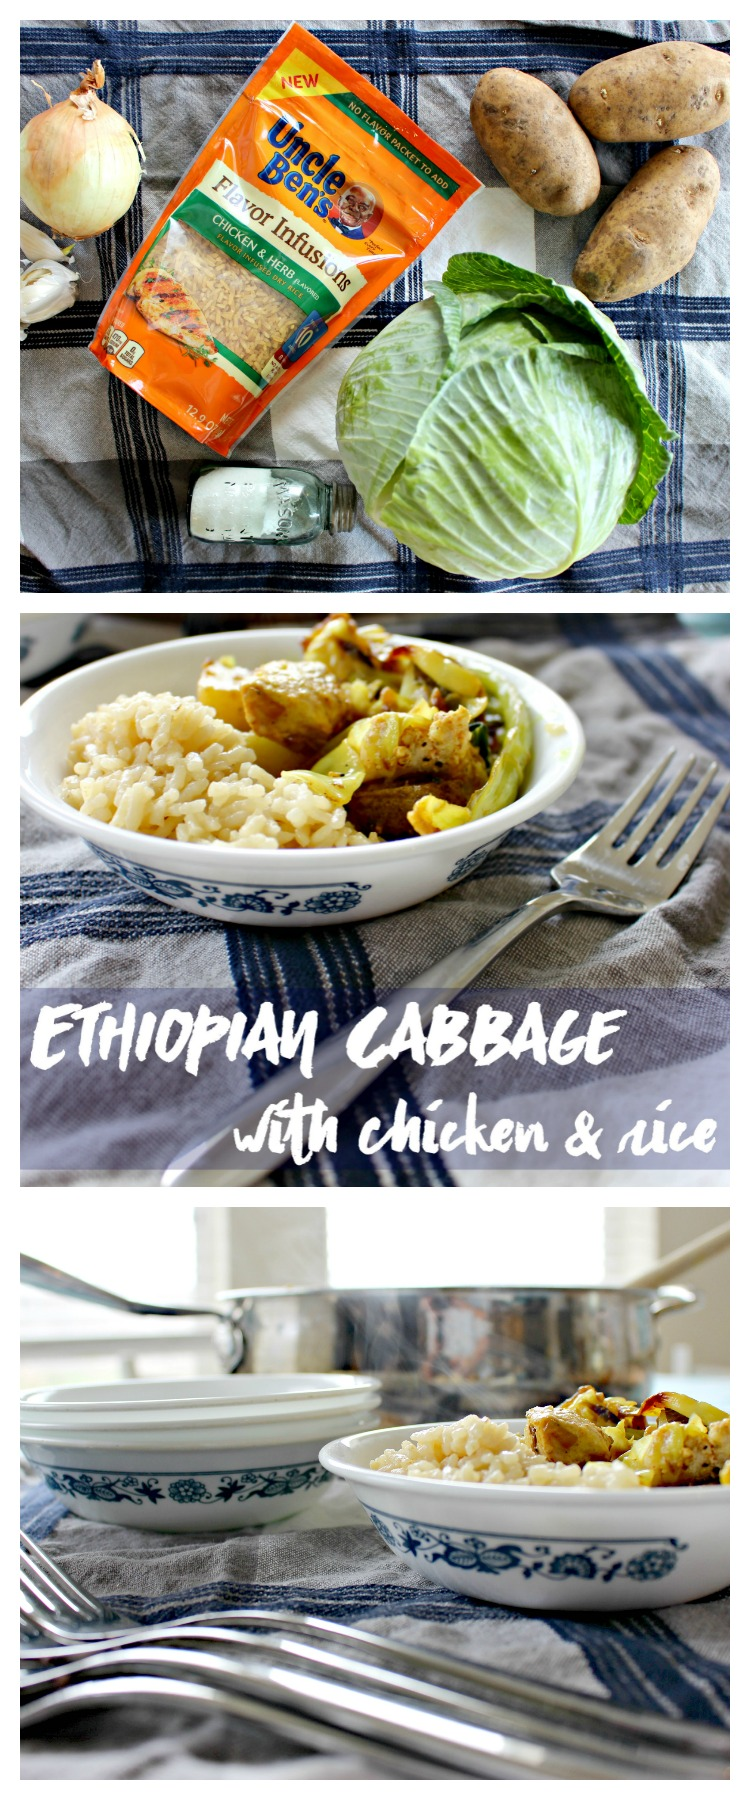 Want to Mix Up Your Typical Weeknight Meal with Some Easy Flavor? Try Ethiopian Cabbage with Chicken & Rice! #UncleBens #FlavorInfusions #Ad